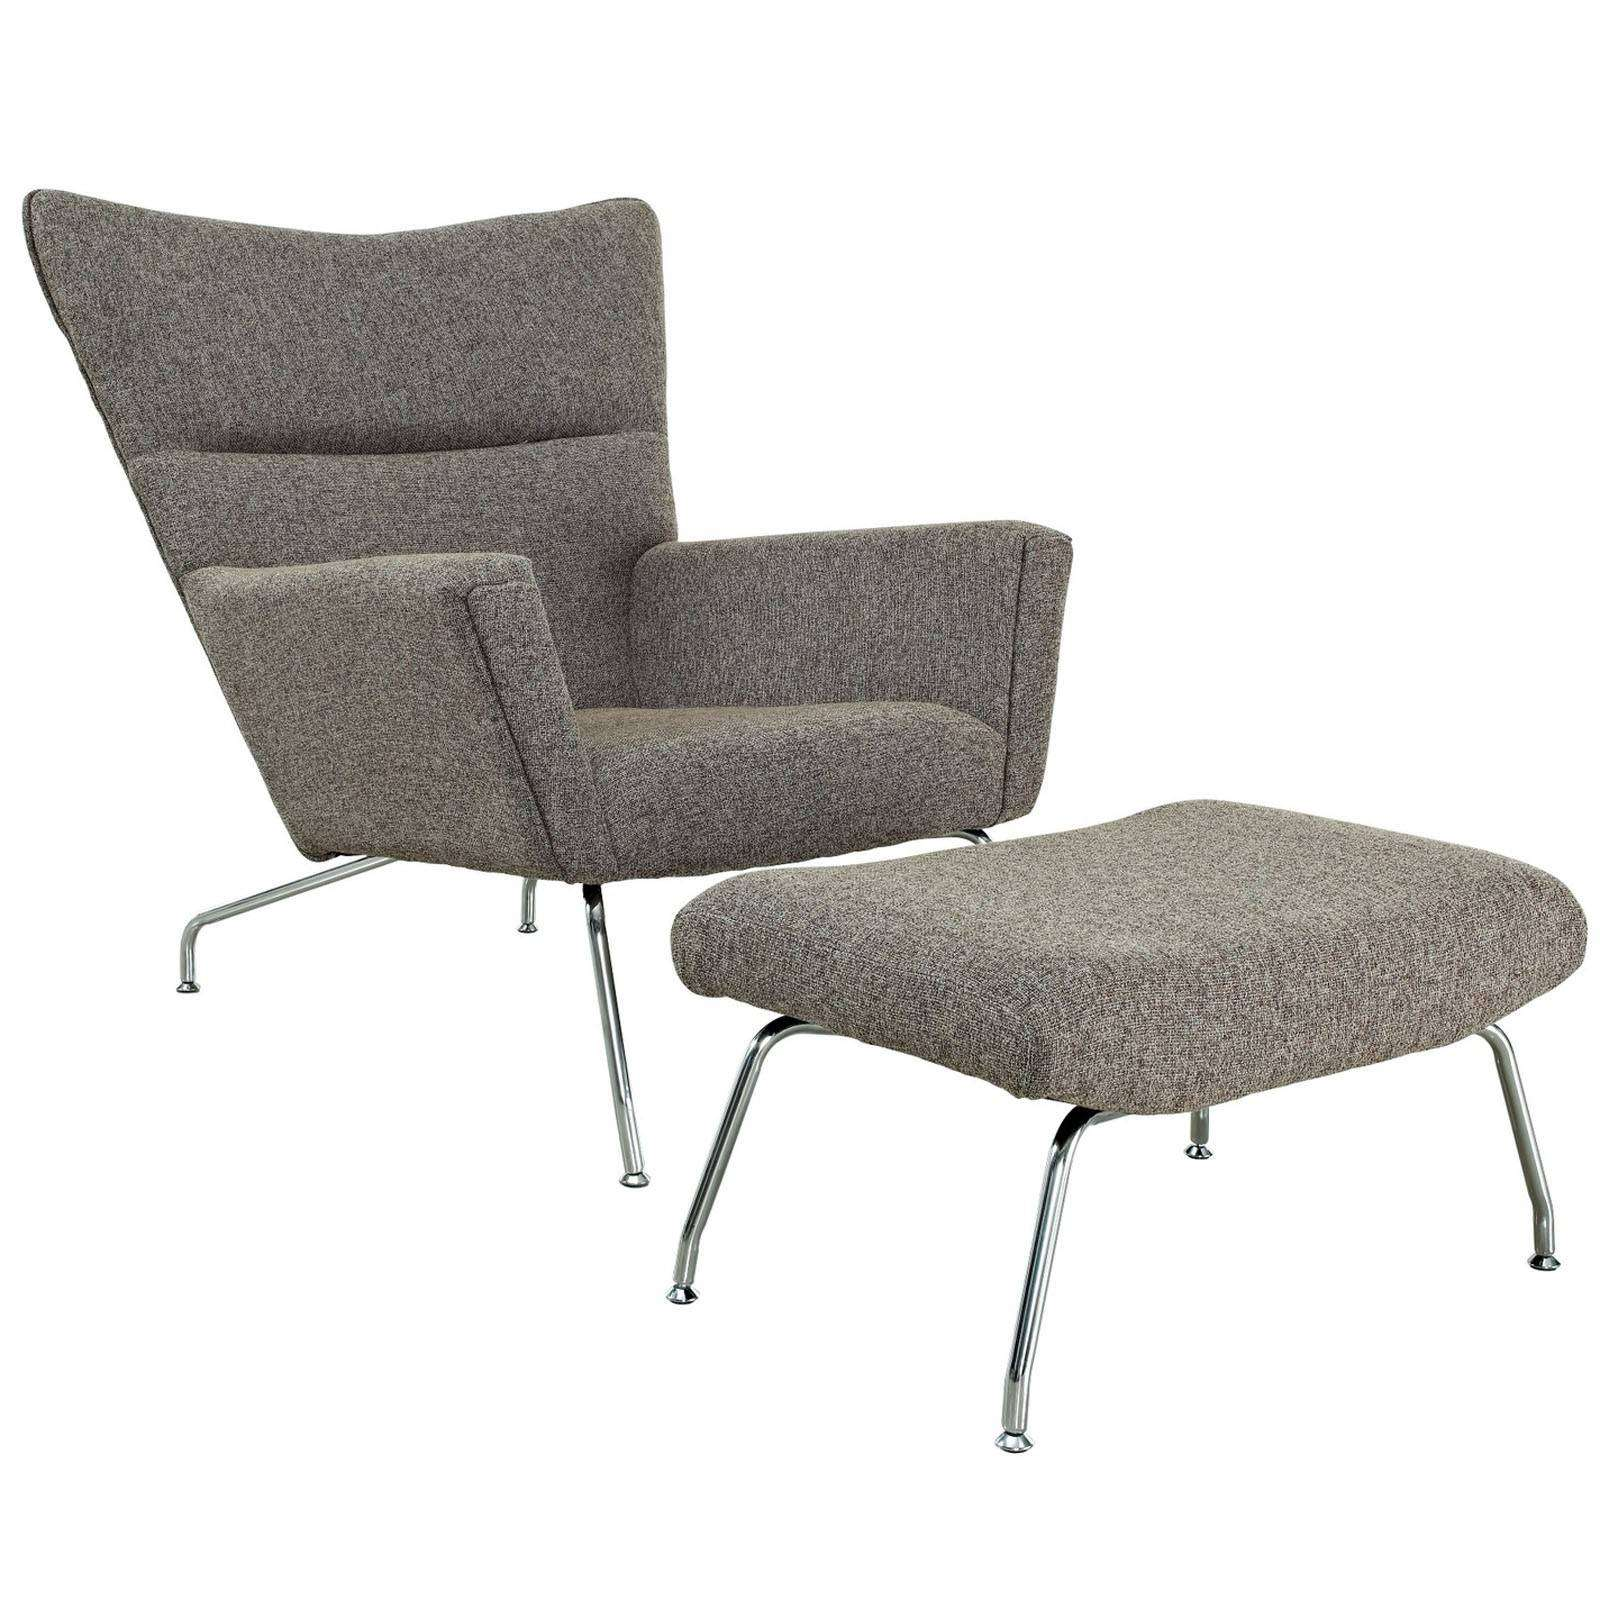 Hans wegner ch445 wing lounge chair wool - Wegner wing chair replica ...